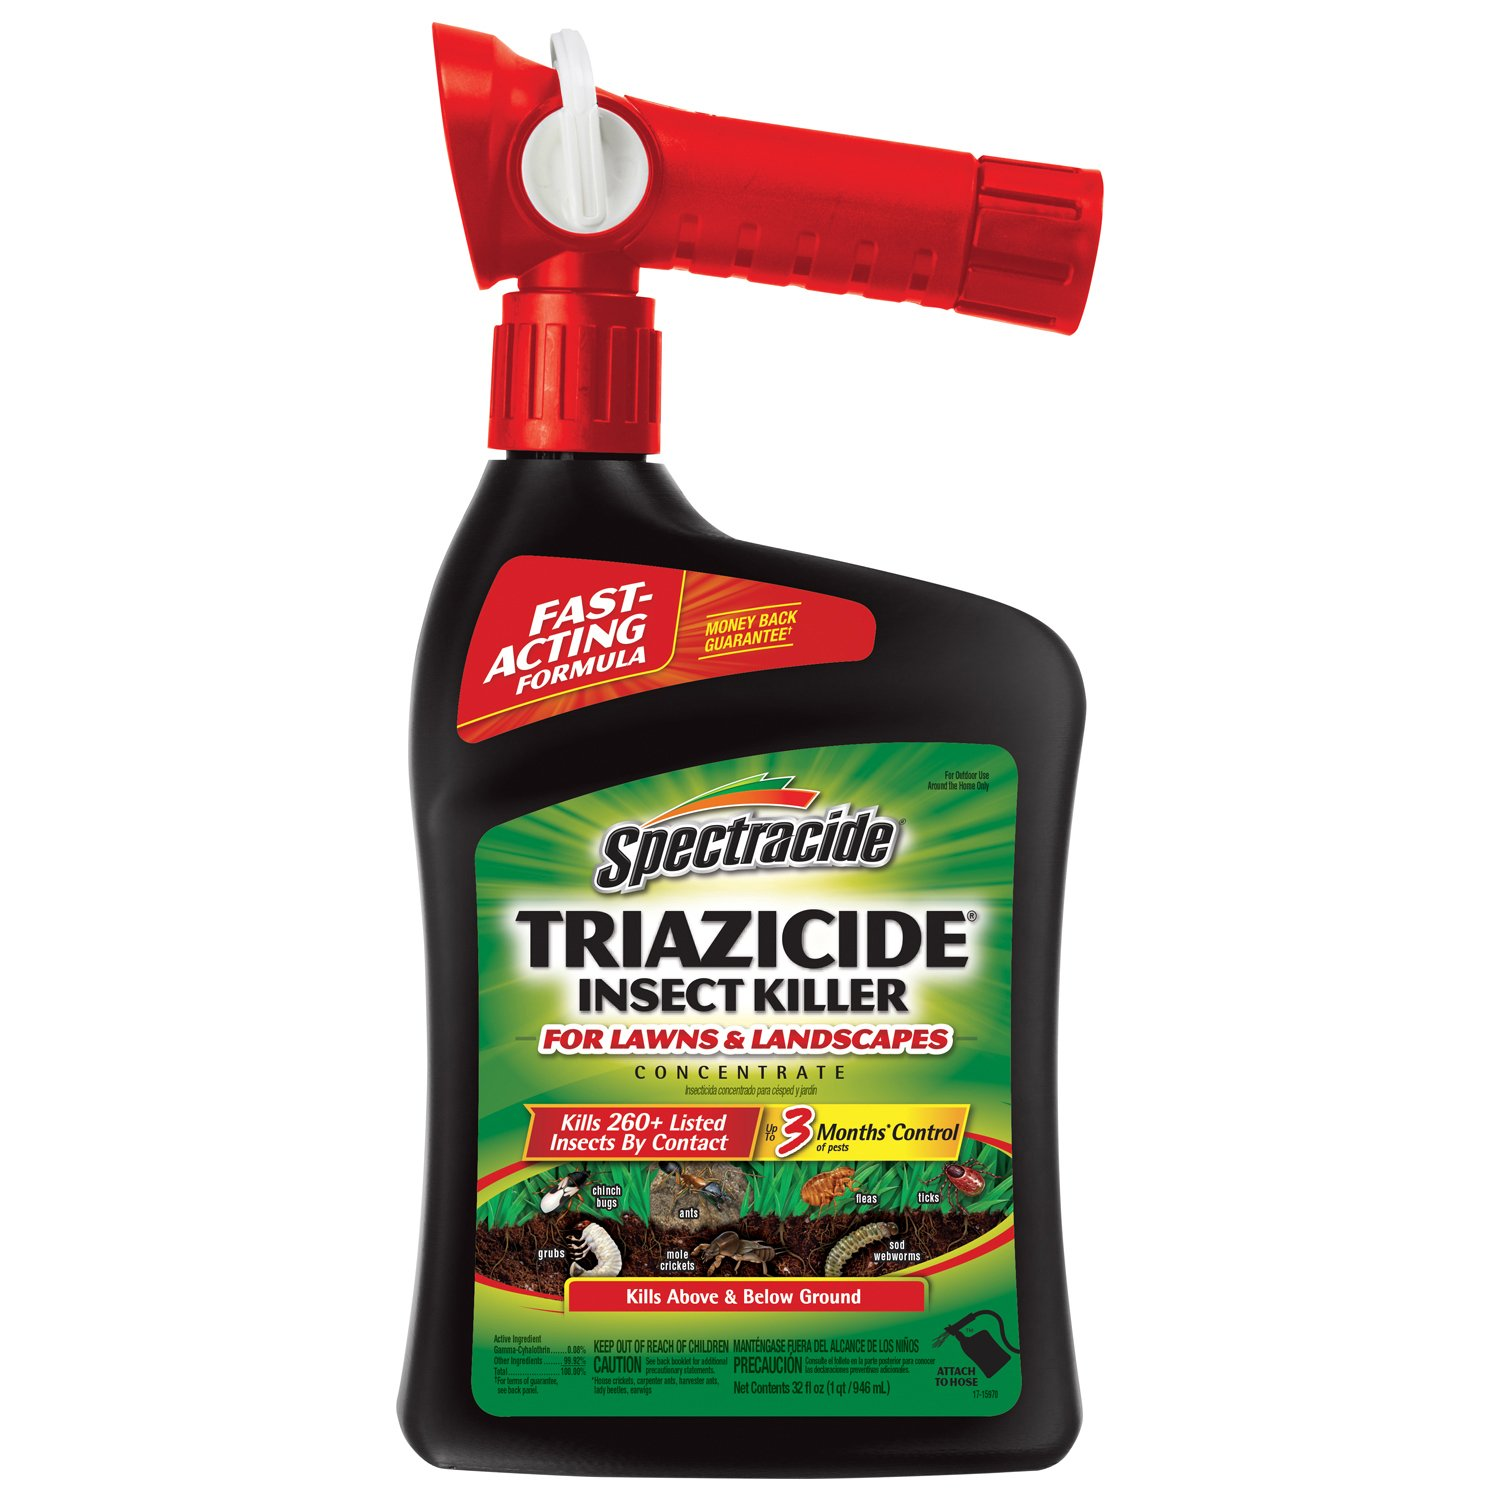 Spectracide Triazicide Insect Killer For Lawns and Landscapes (Top Choice)